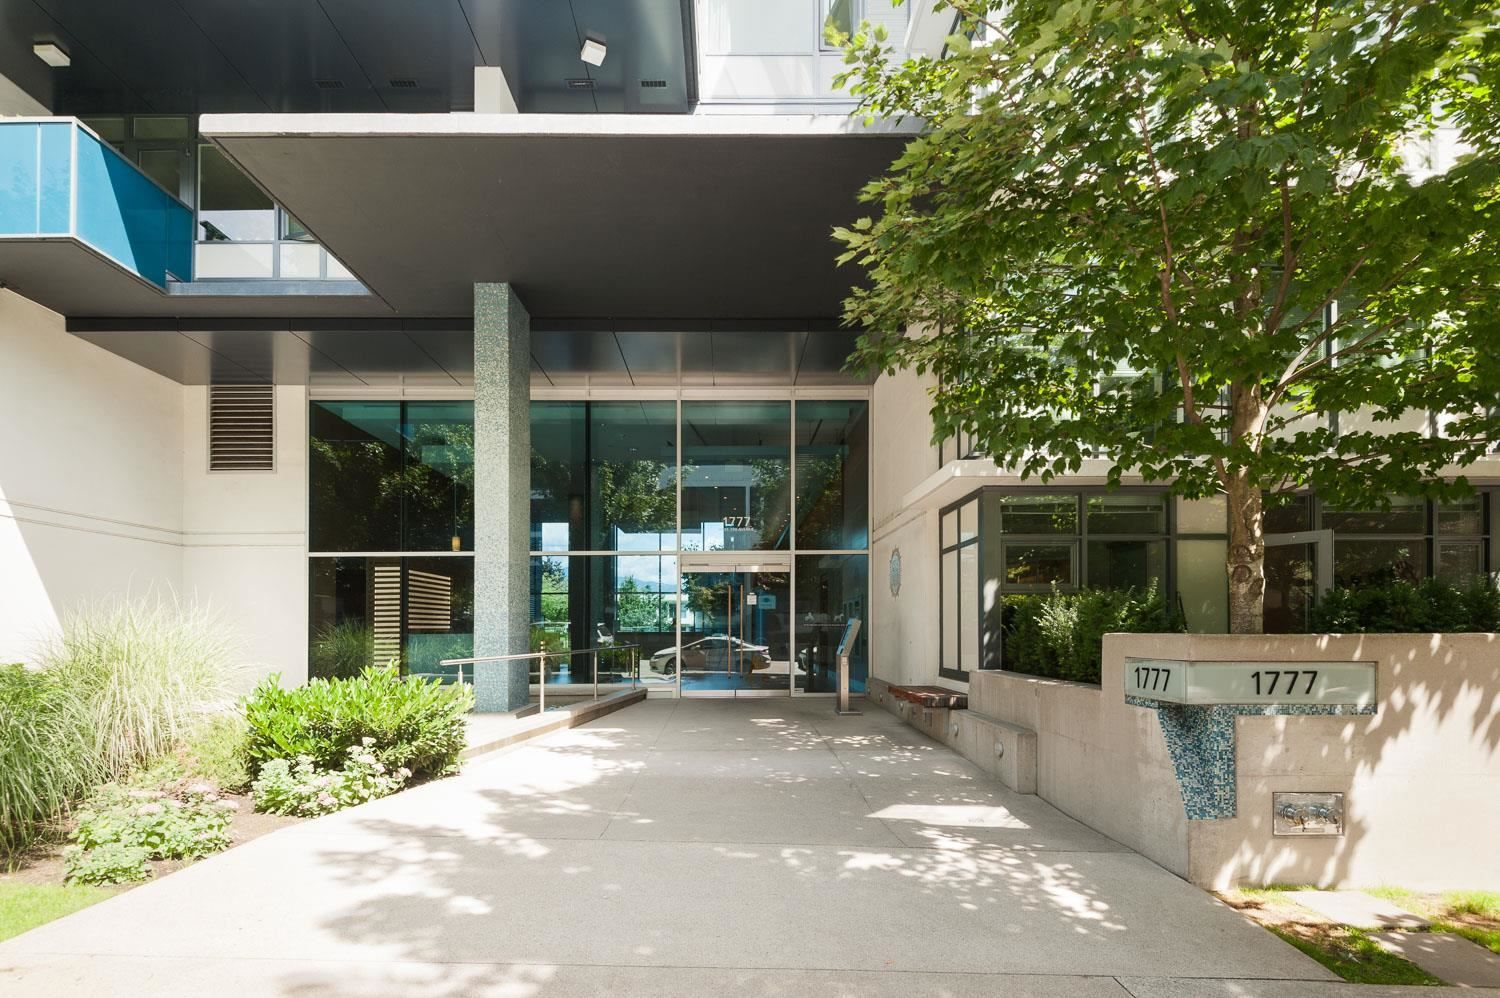 Main Photo: 132 1777 W 7TH Avenue in Vancouver: Fairview VW Condo for sale (Vancouver West)  : MLS®# R2605763